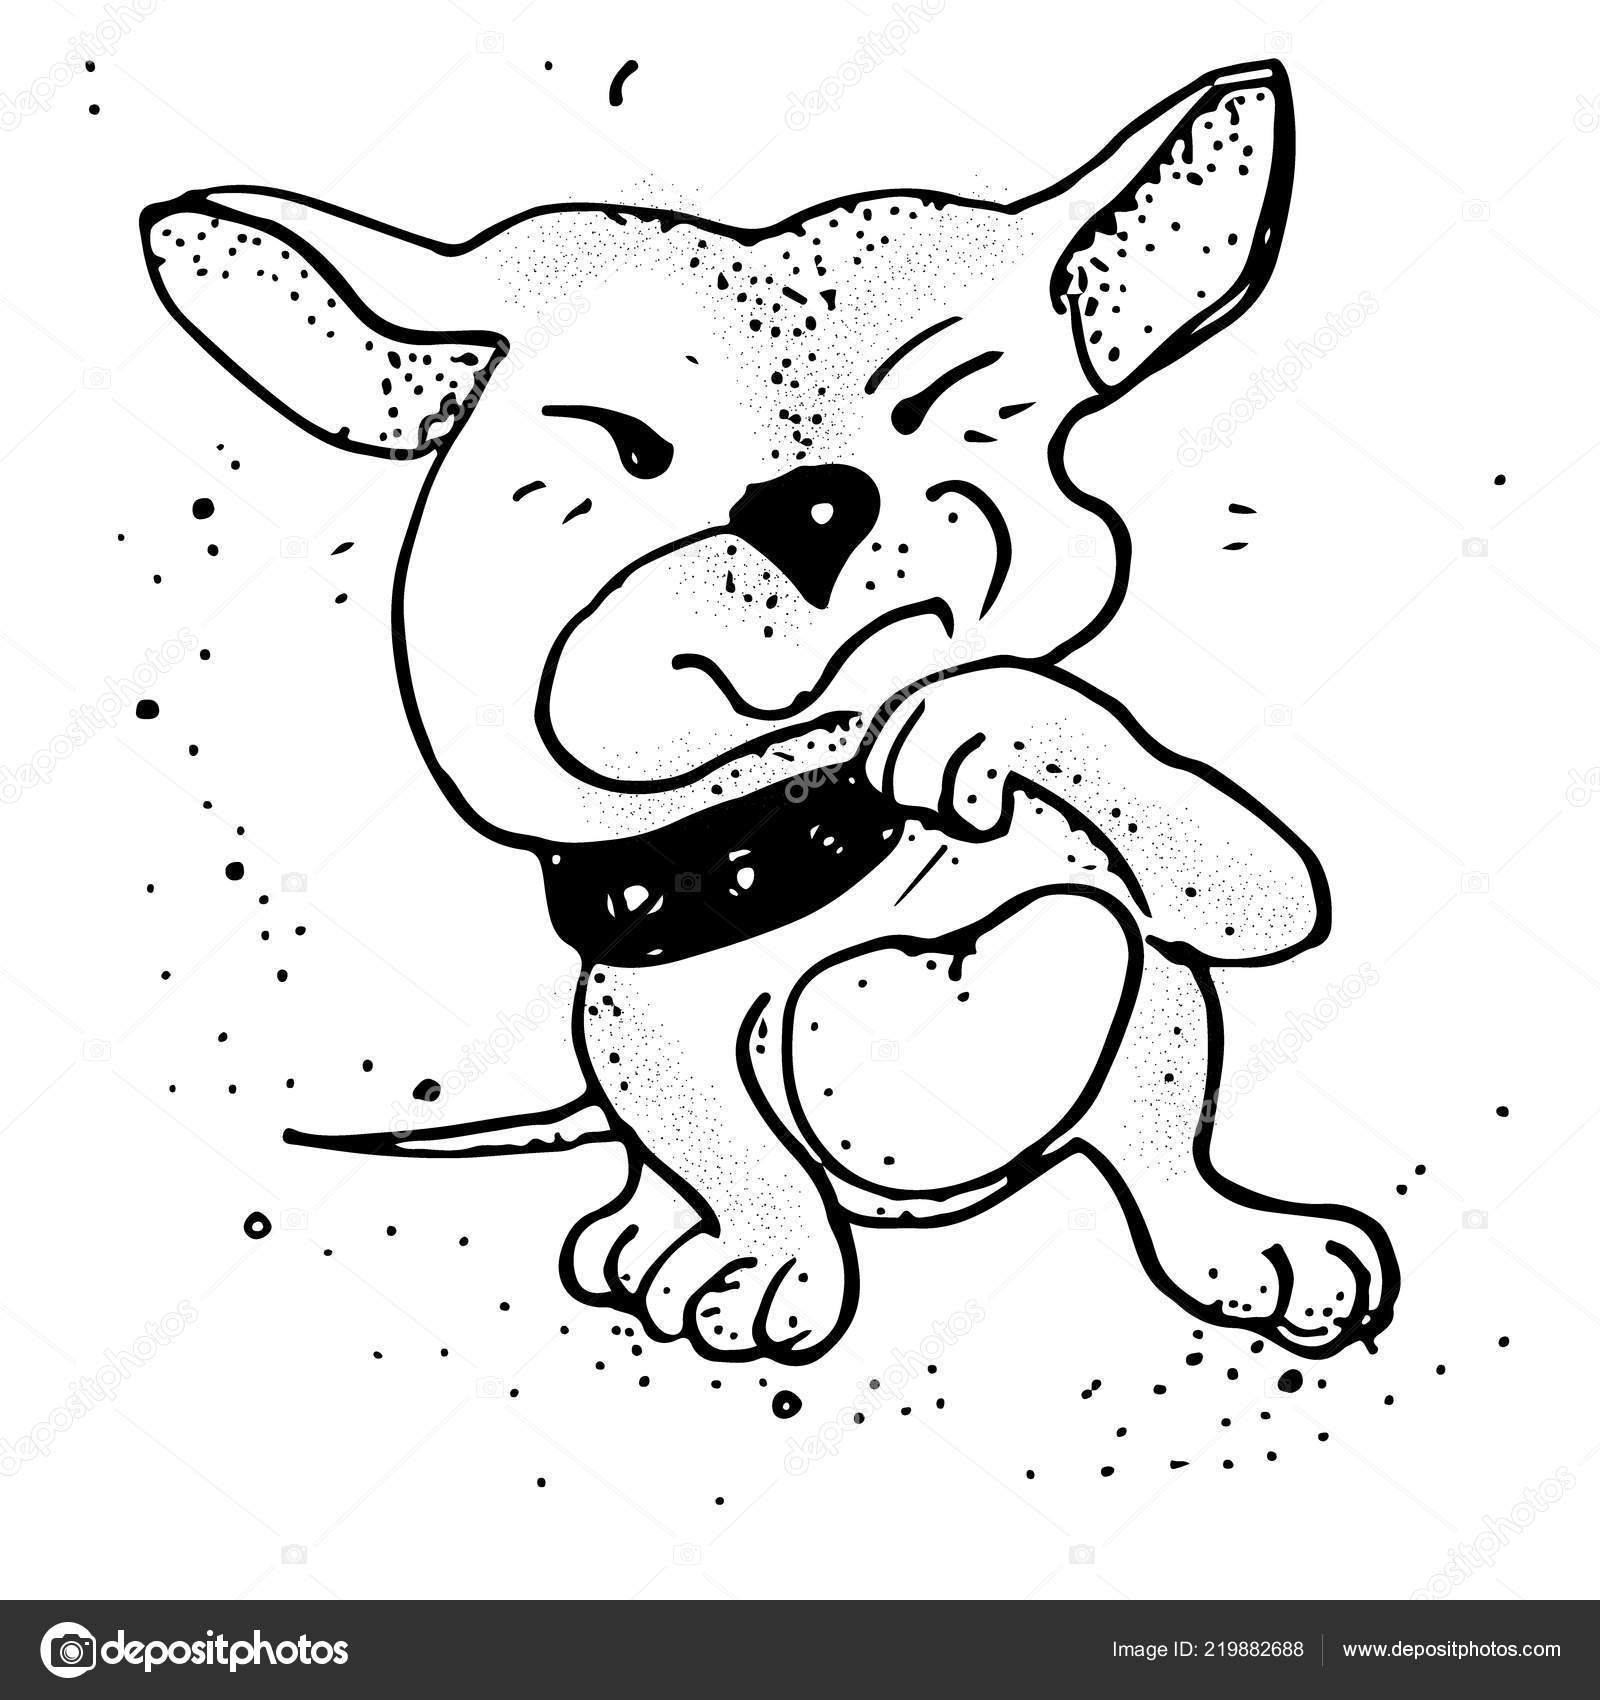 Upset Dog Puppy Emoji Cartoon Illustration Isolated Stock Vector